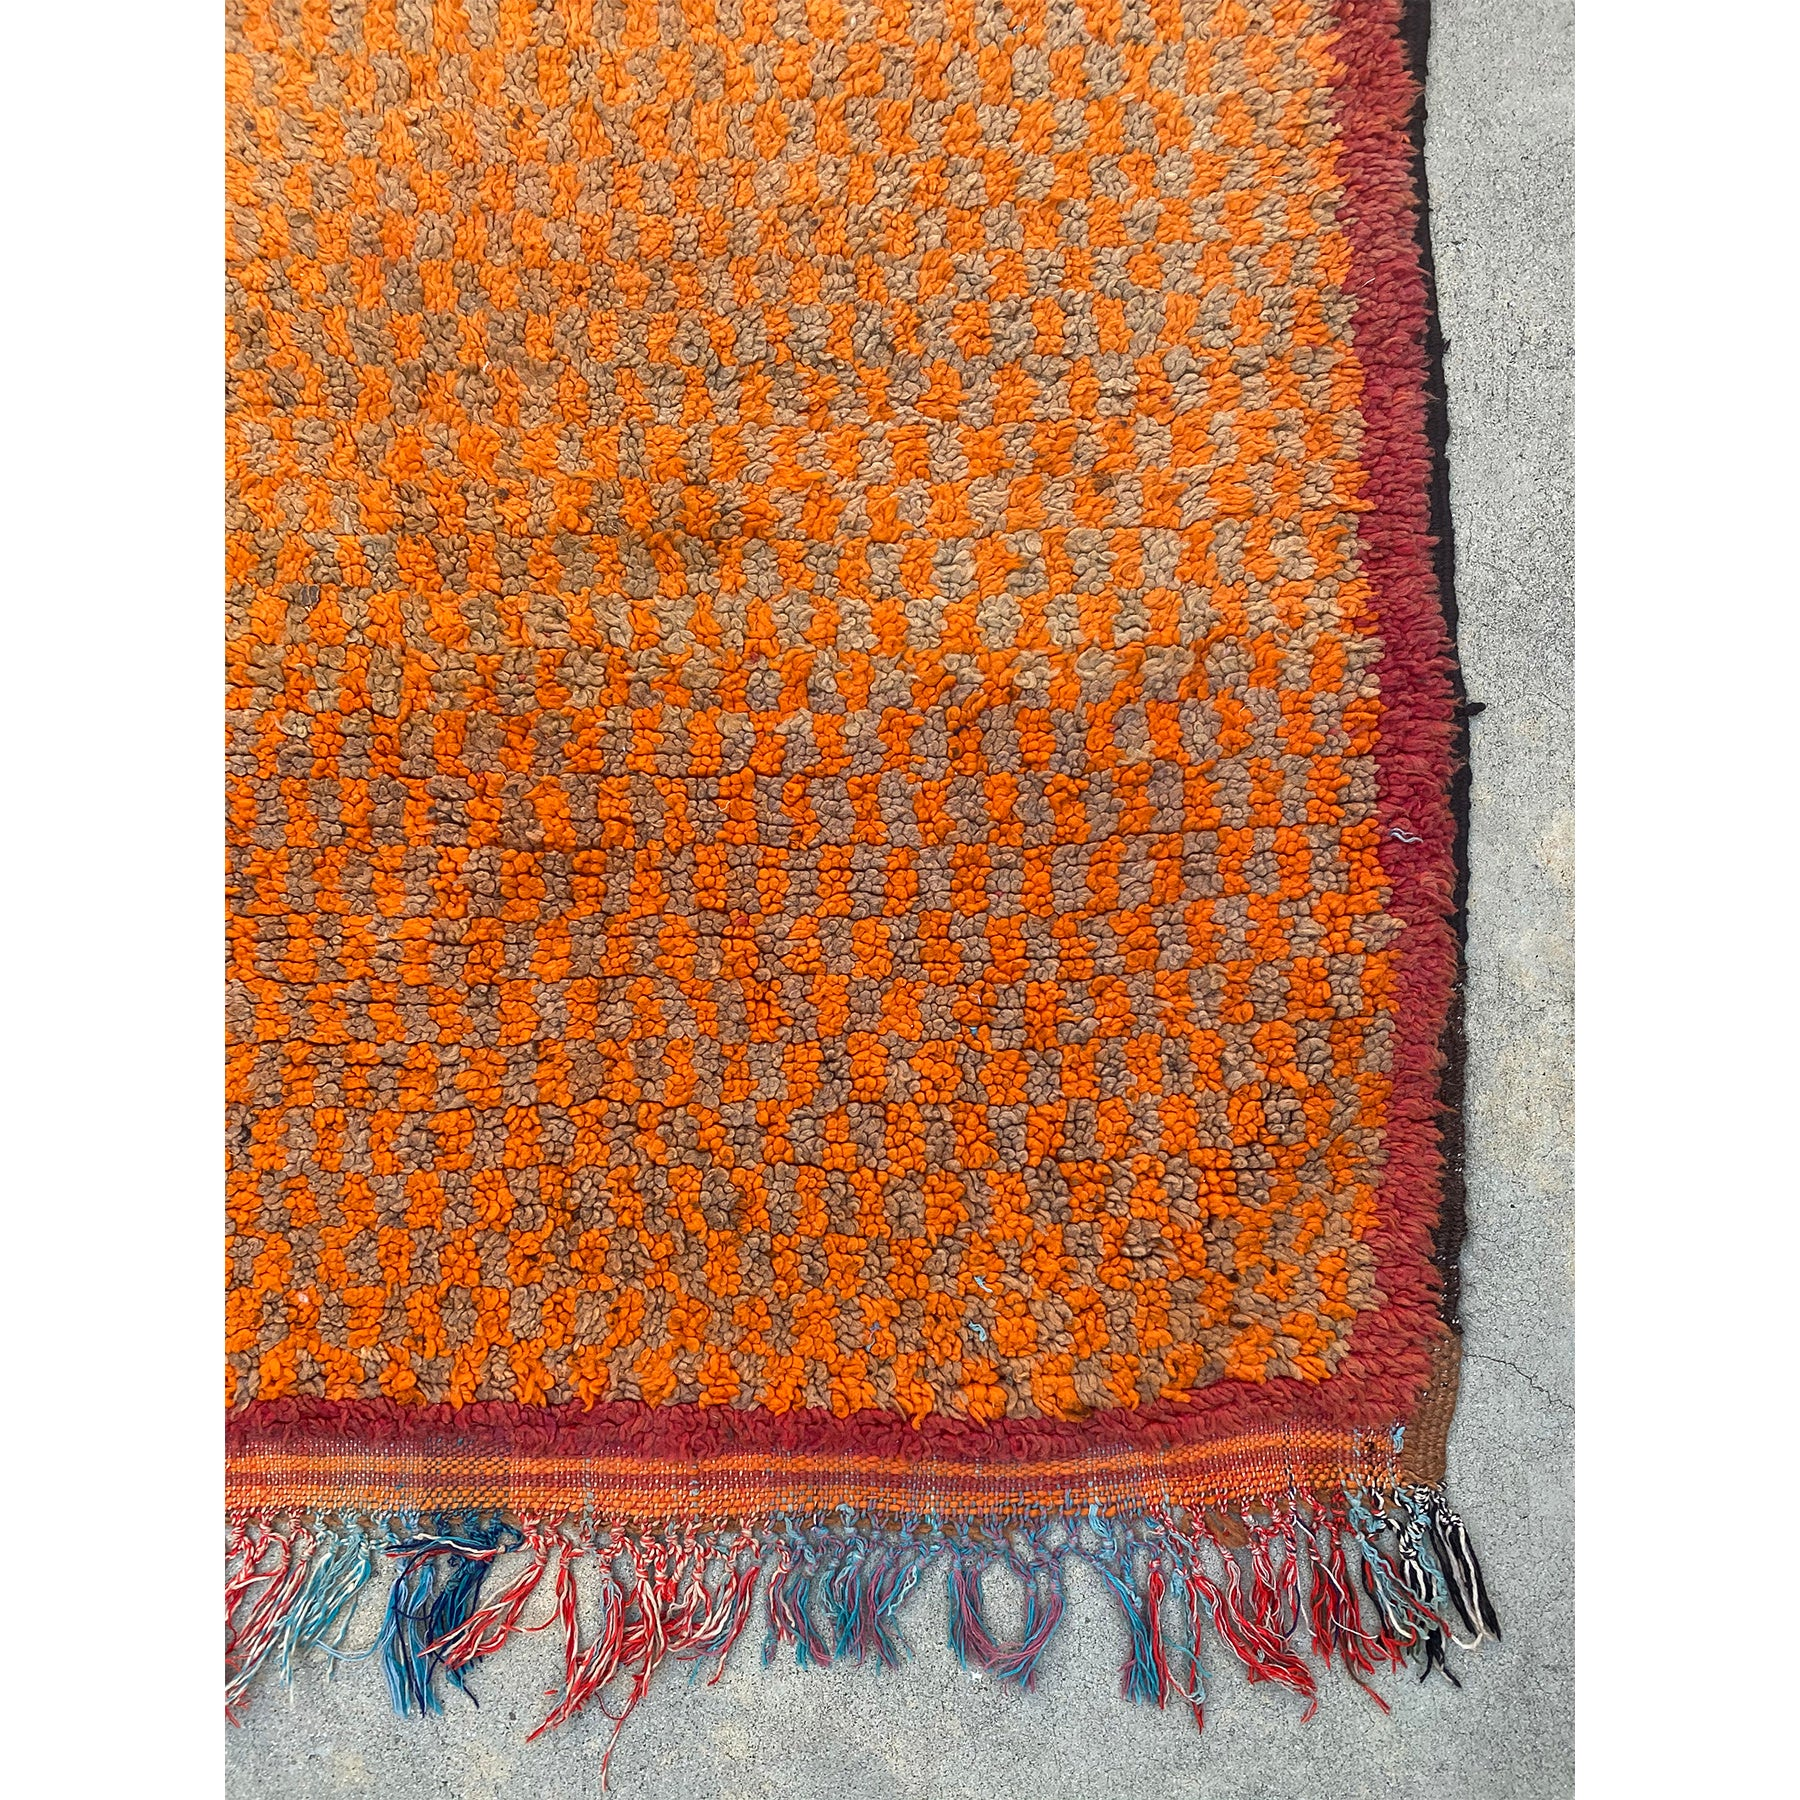 Medium sized orange Moroccan rug with red border - Kantara | Moroccan Rugs